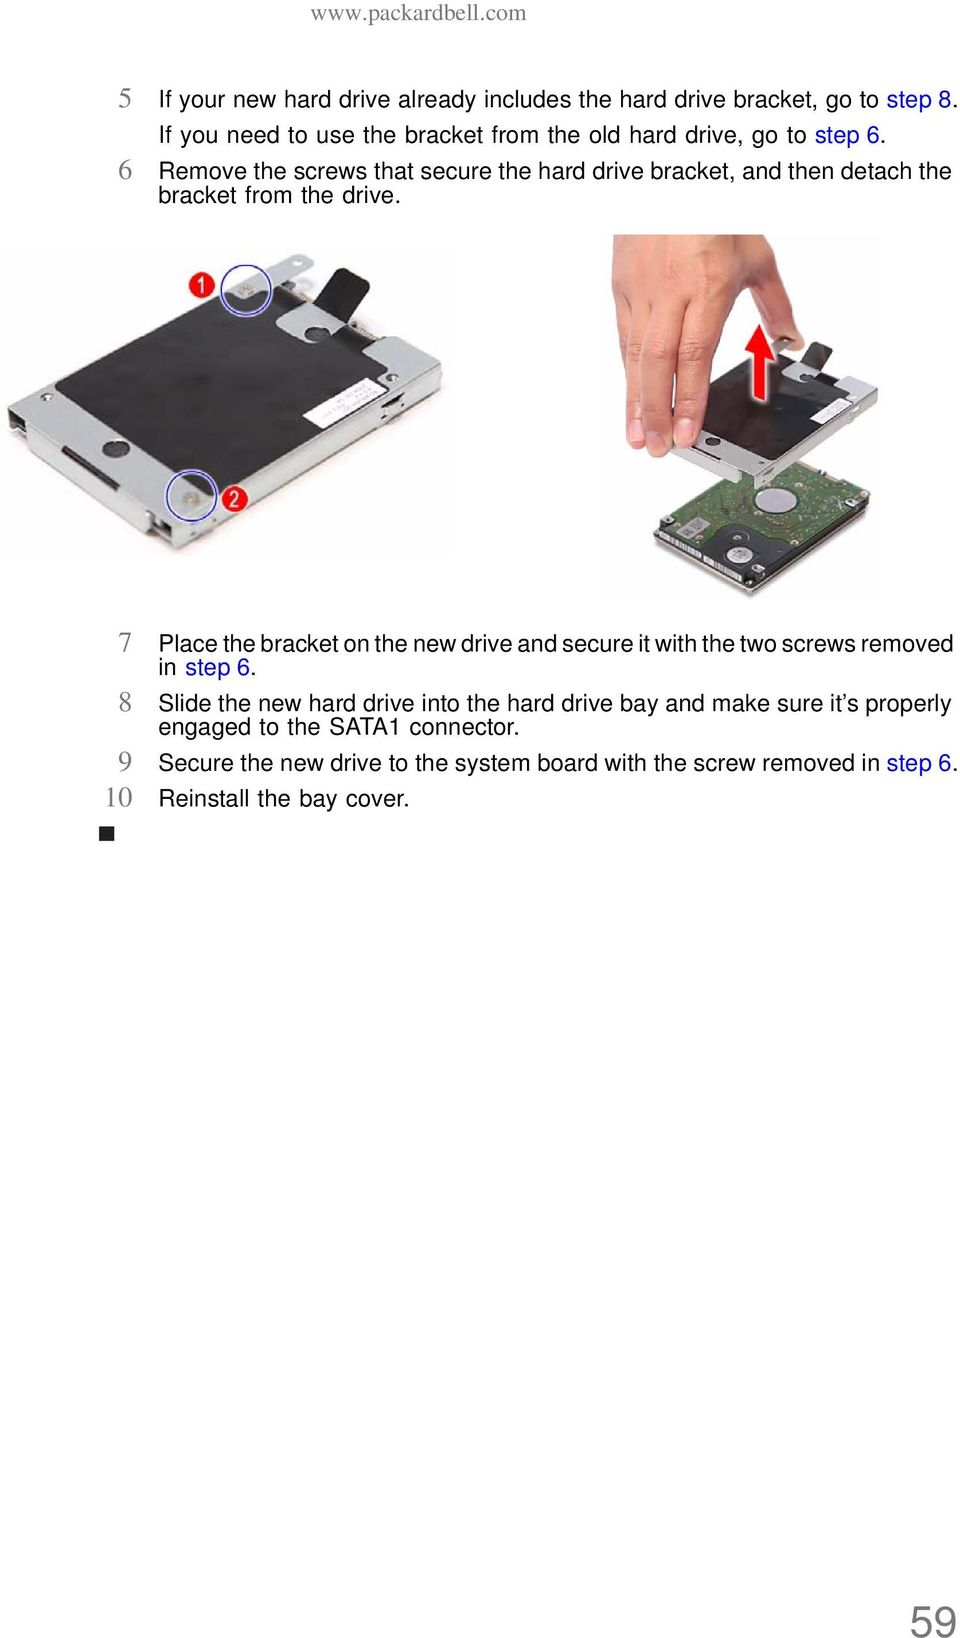 6 Remove the screws that secure the hard drive bracket, and then detach the bracket from the drive.